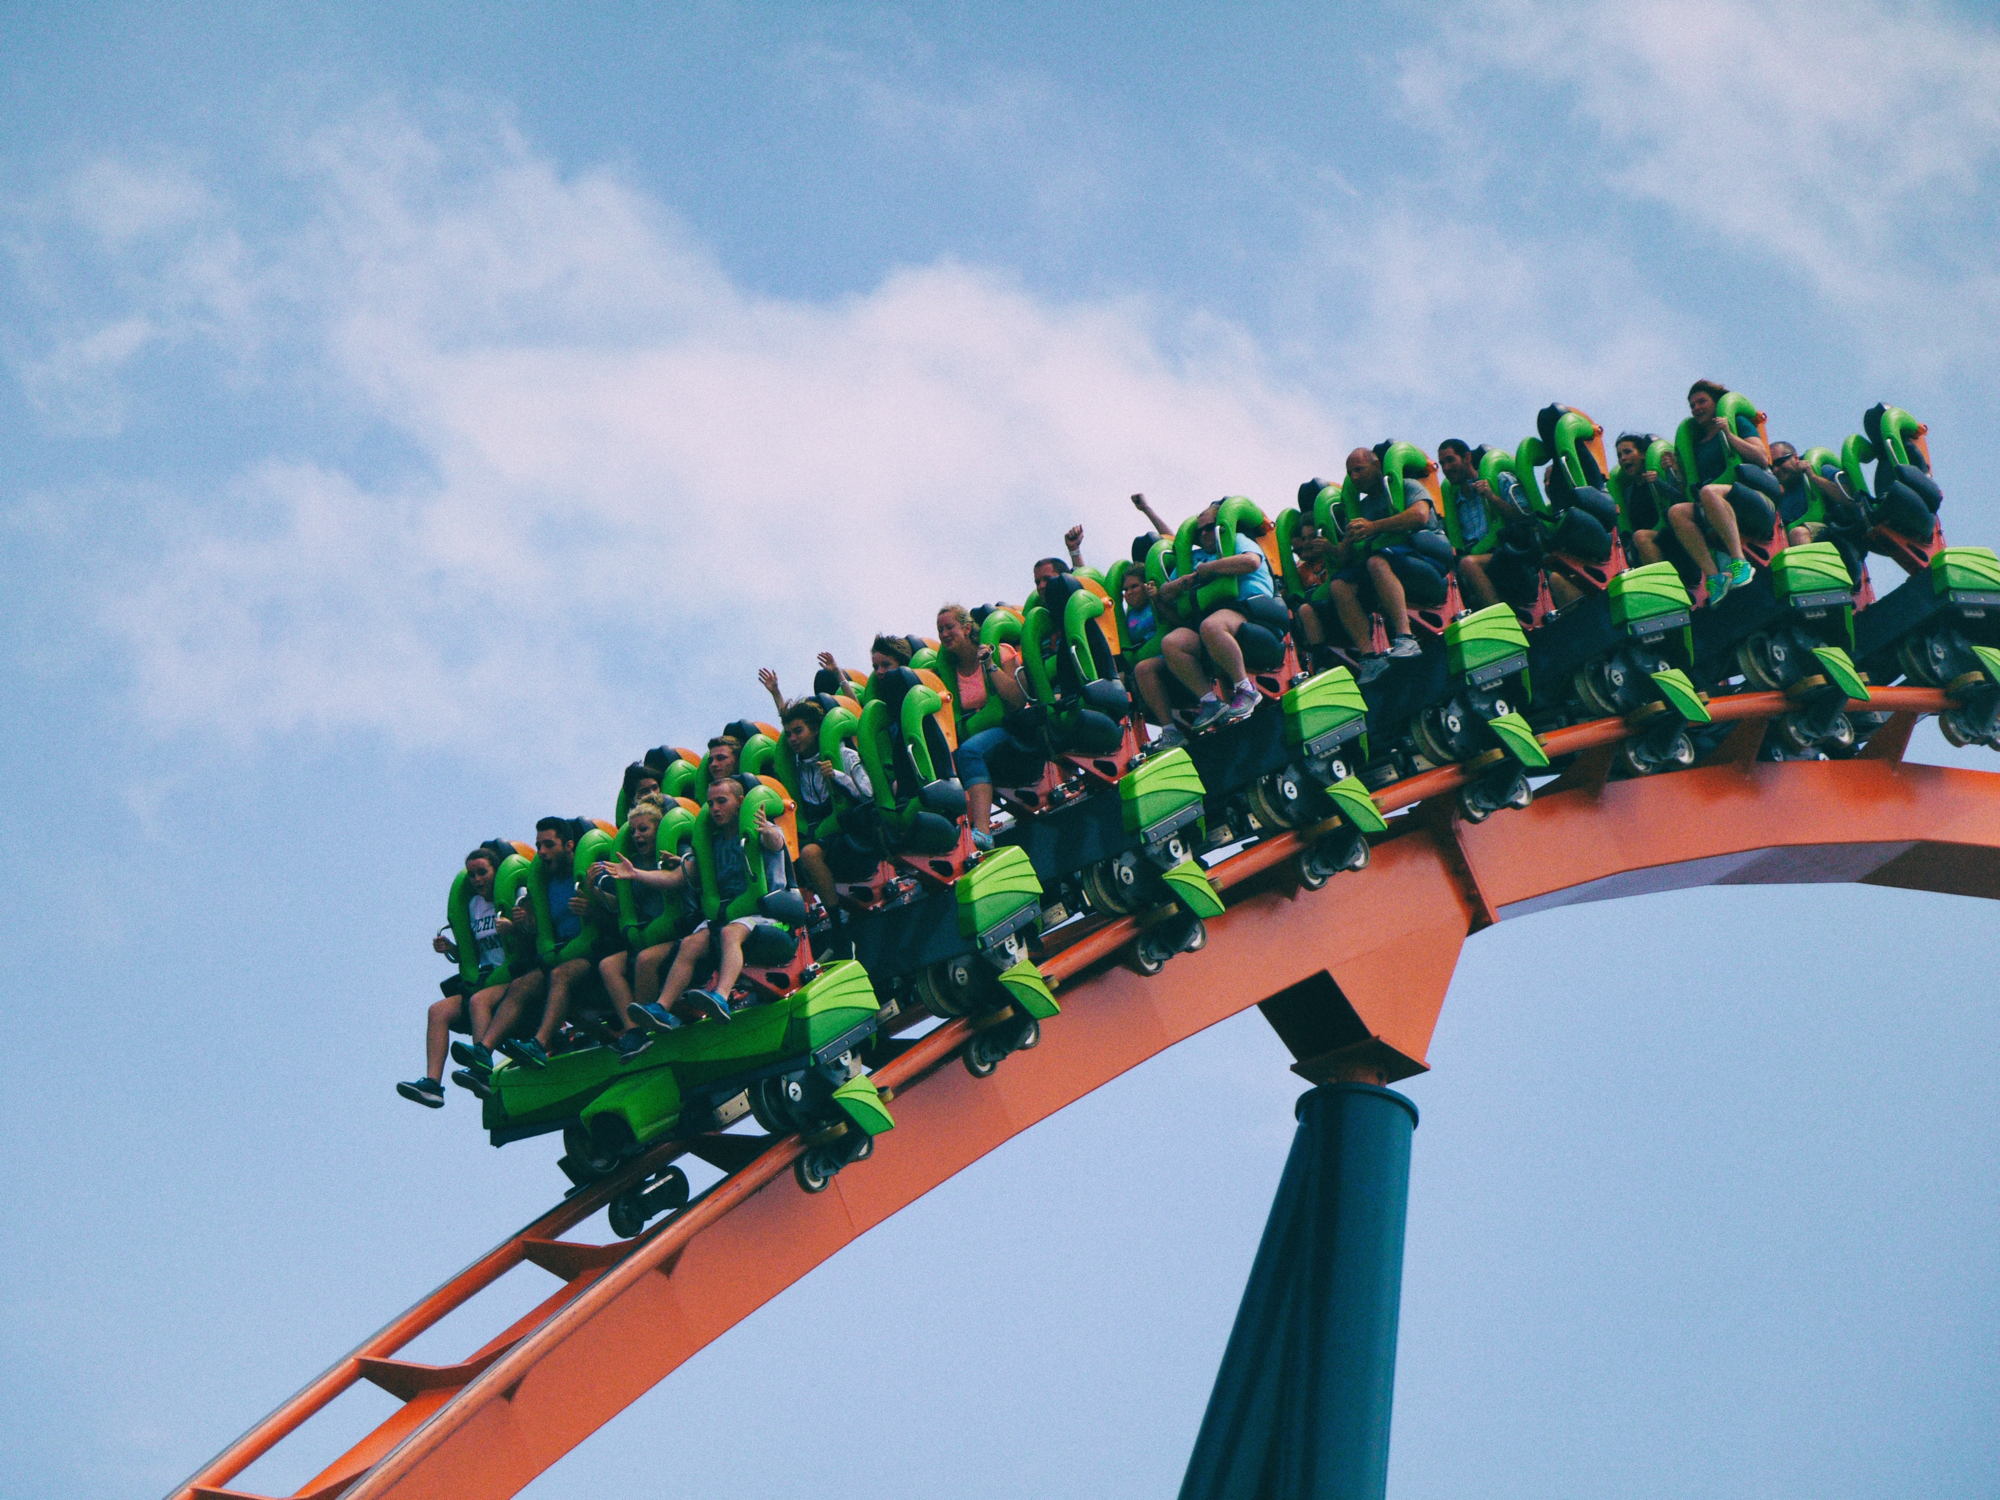 #OpenBlog progress report 2 is like riding a roller coaster